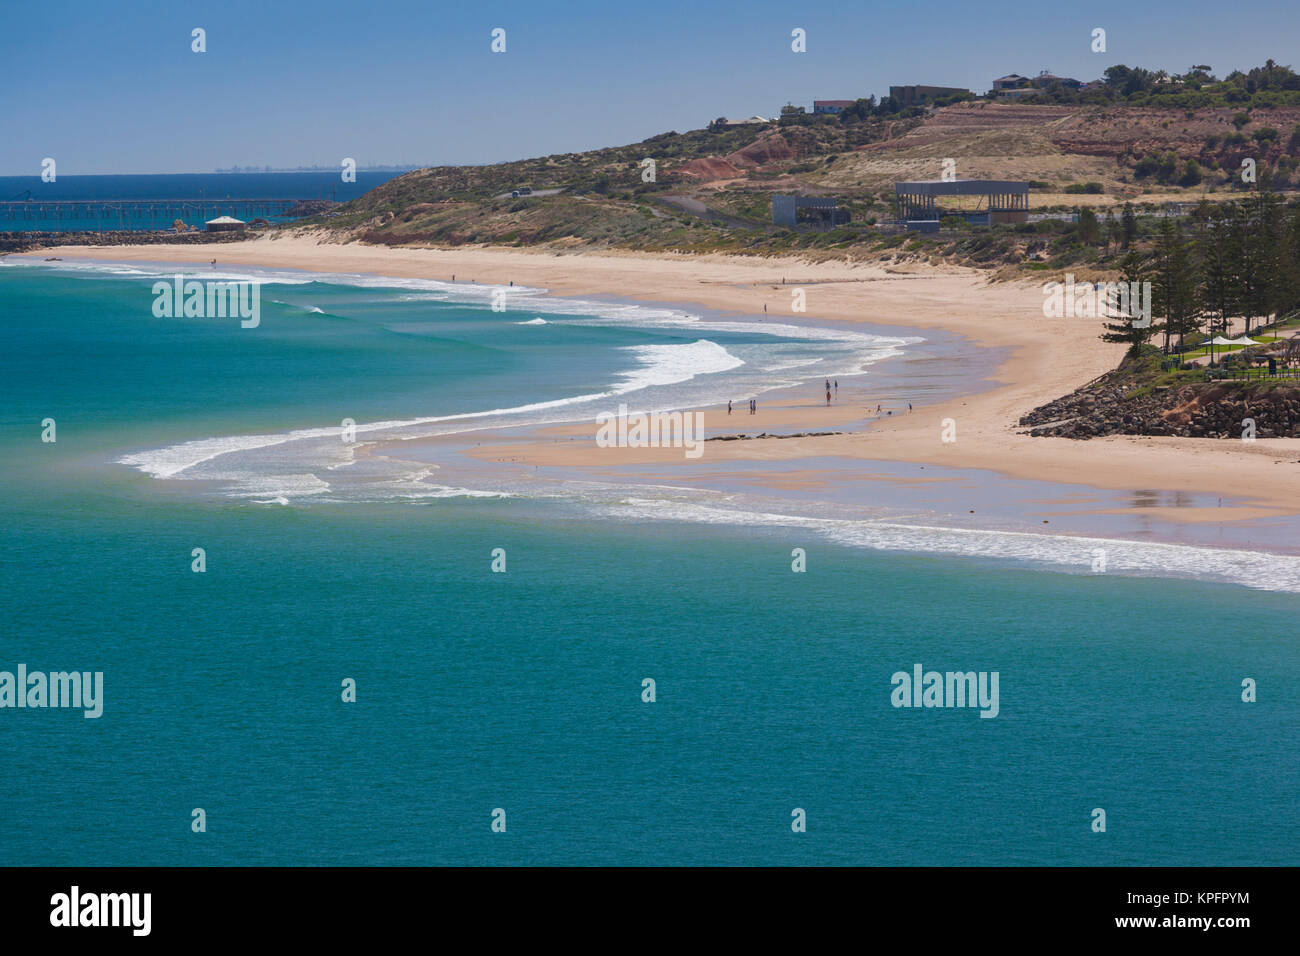 Australia, Fleurieu Peninsula, Christie's Beach, elevated beach view - Stock Image